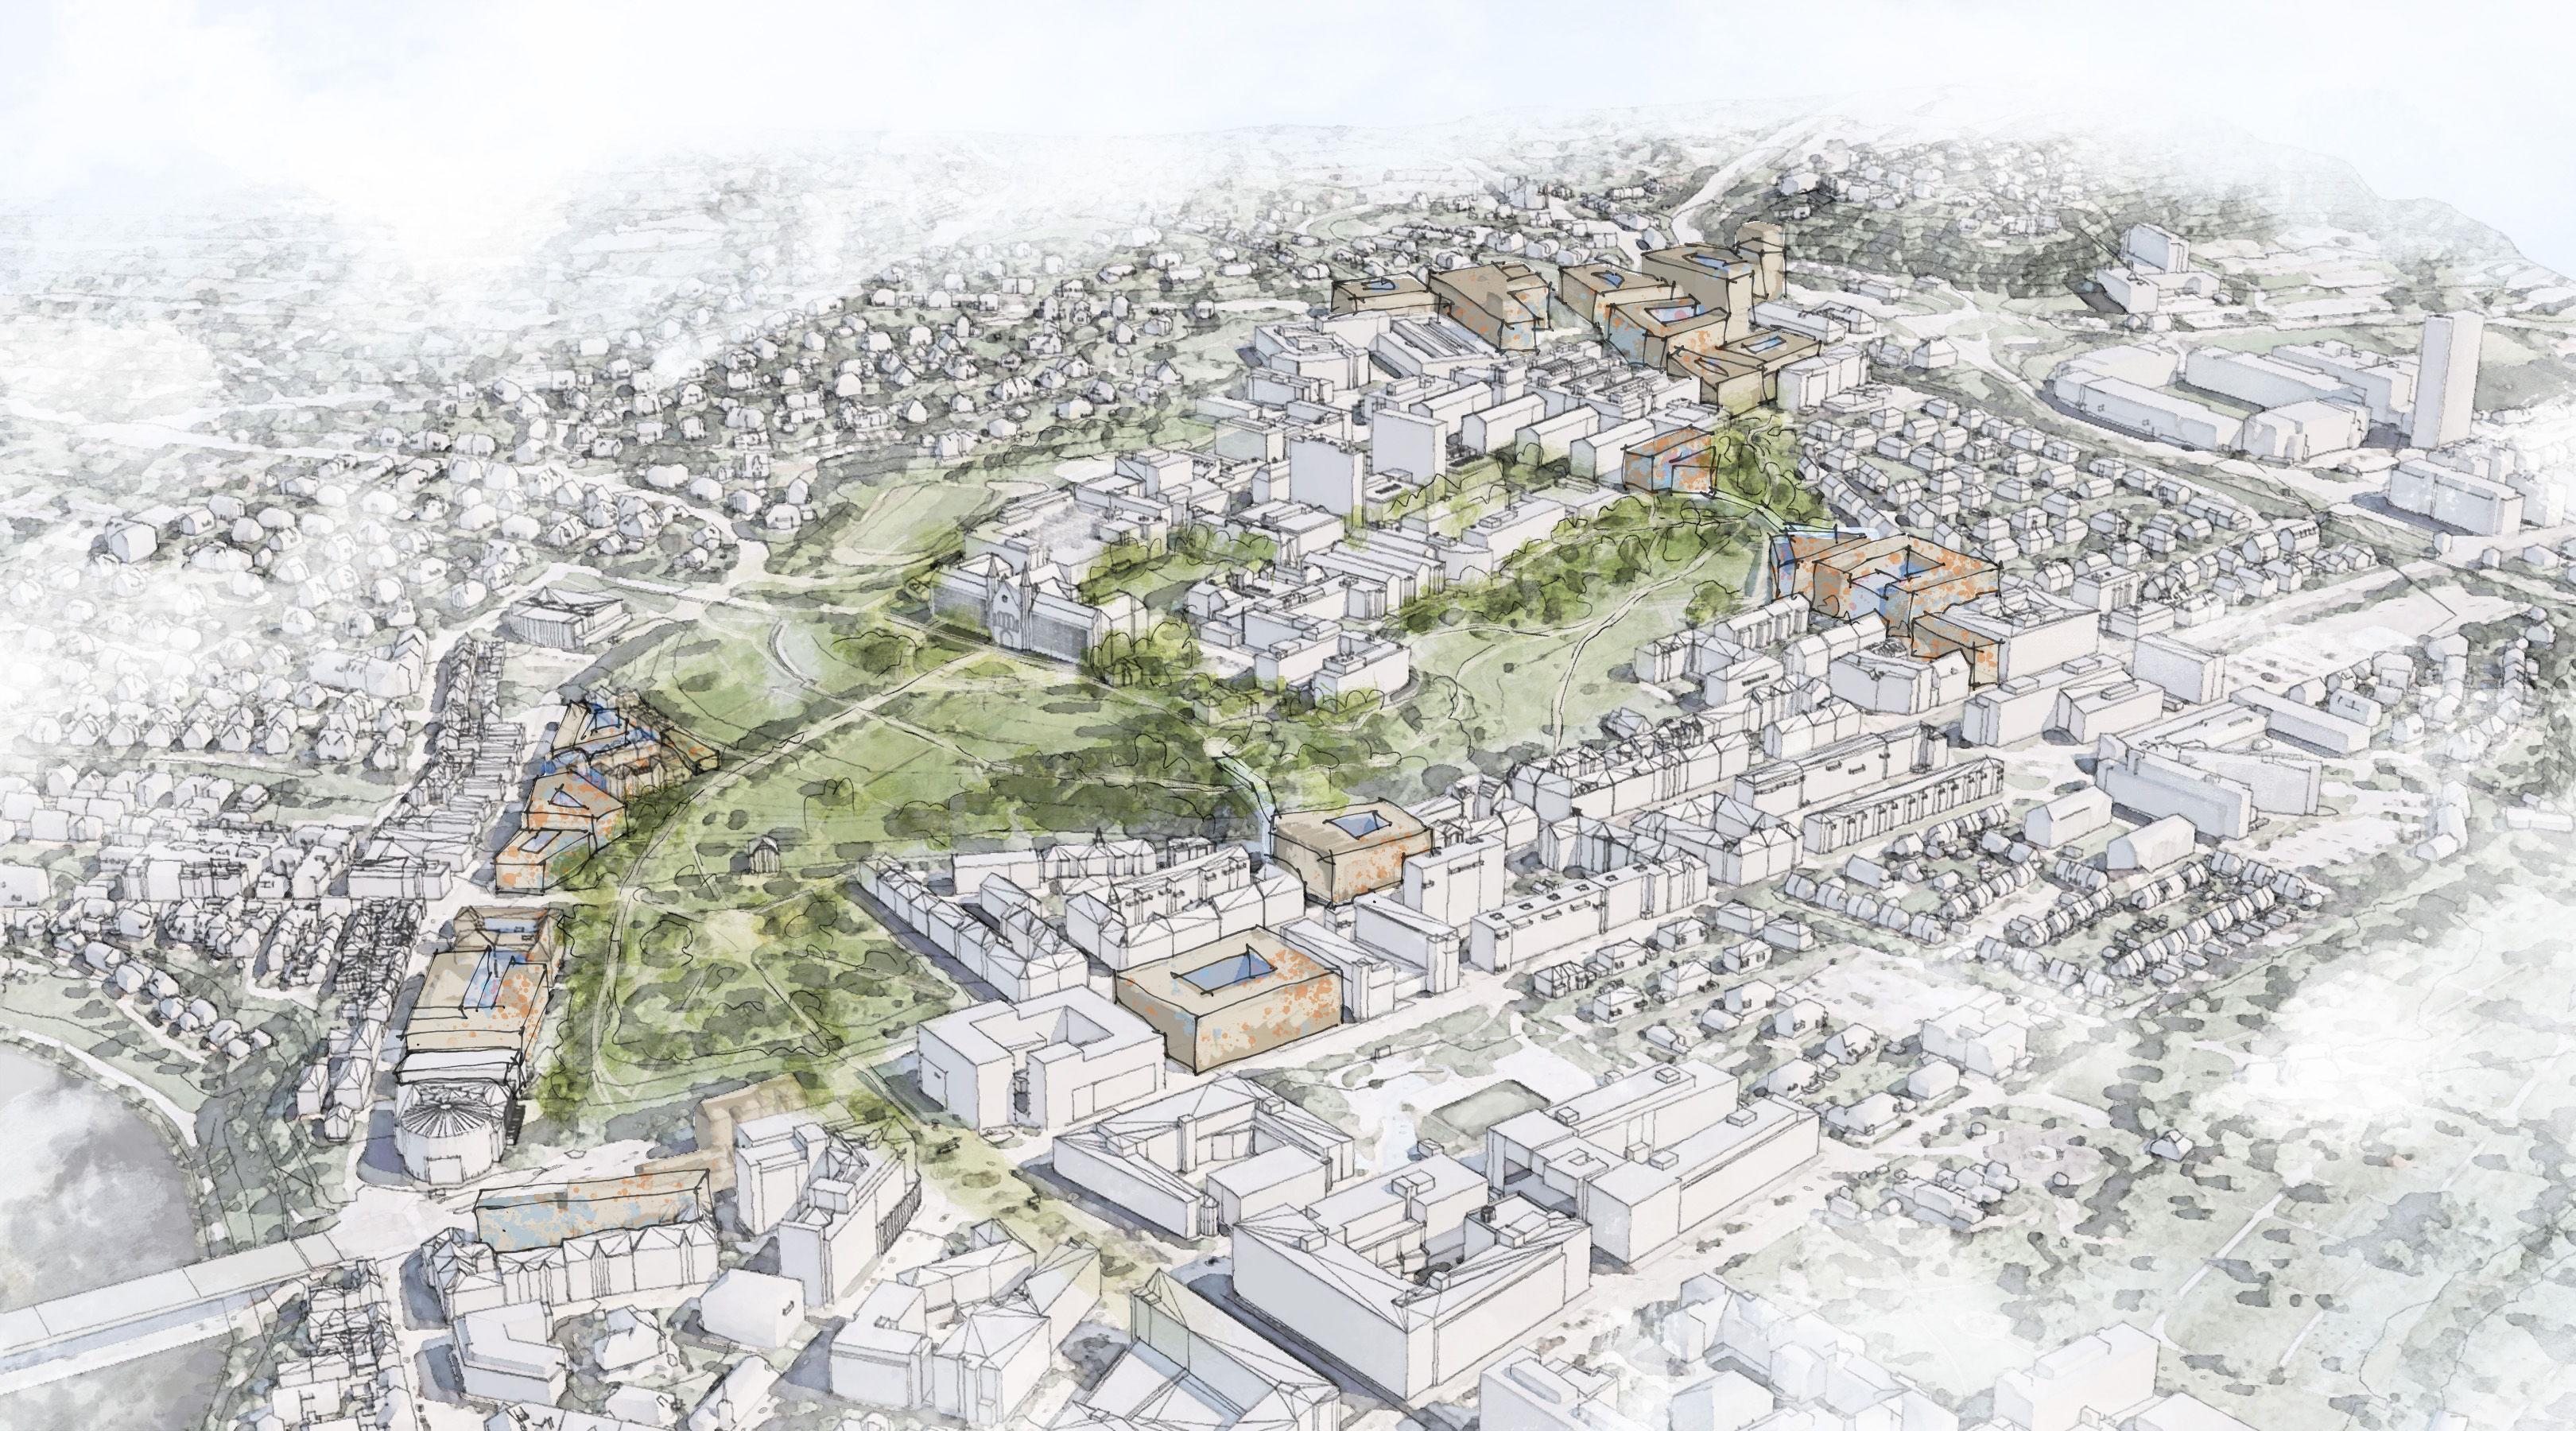 Sketch of overview of Gløshaugen with potential areas for new university buildings.